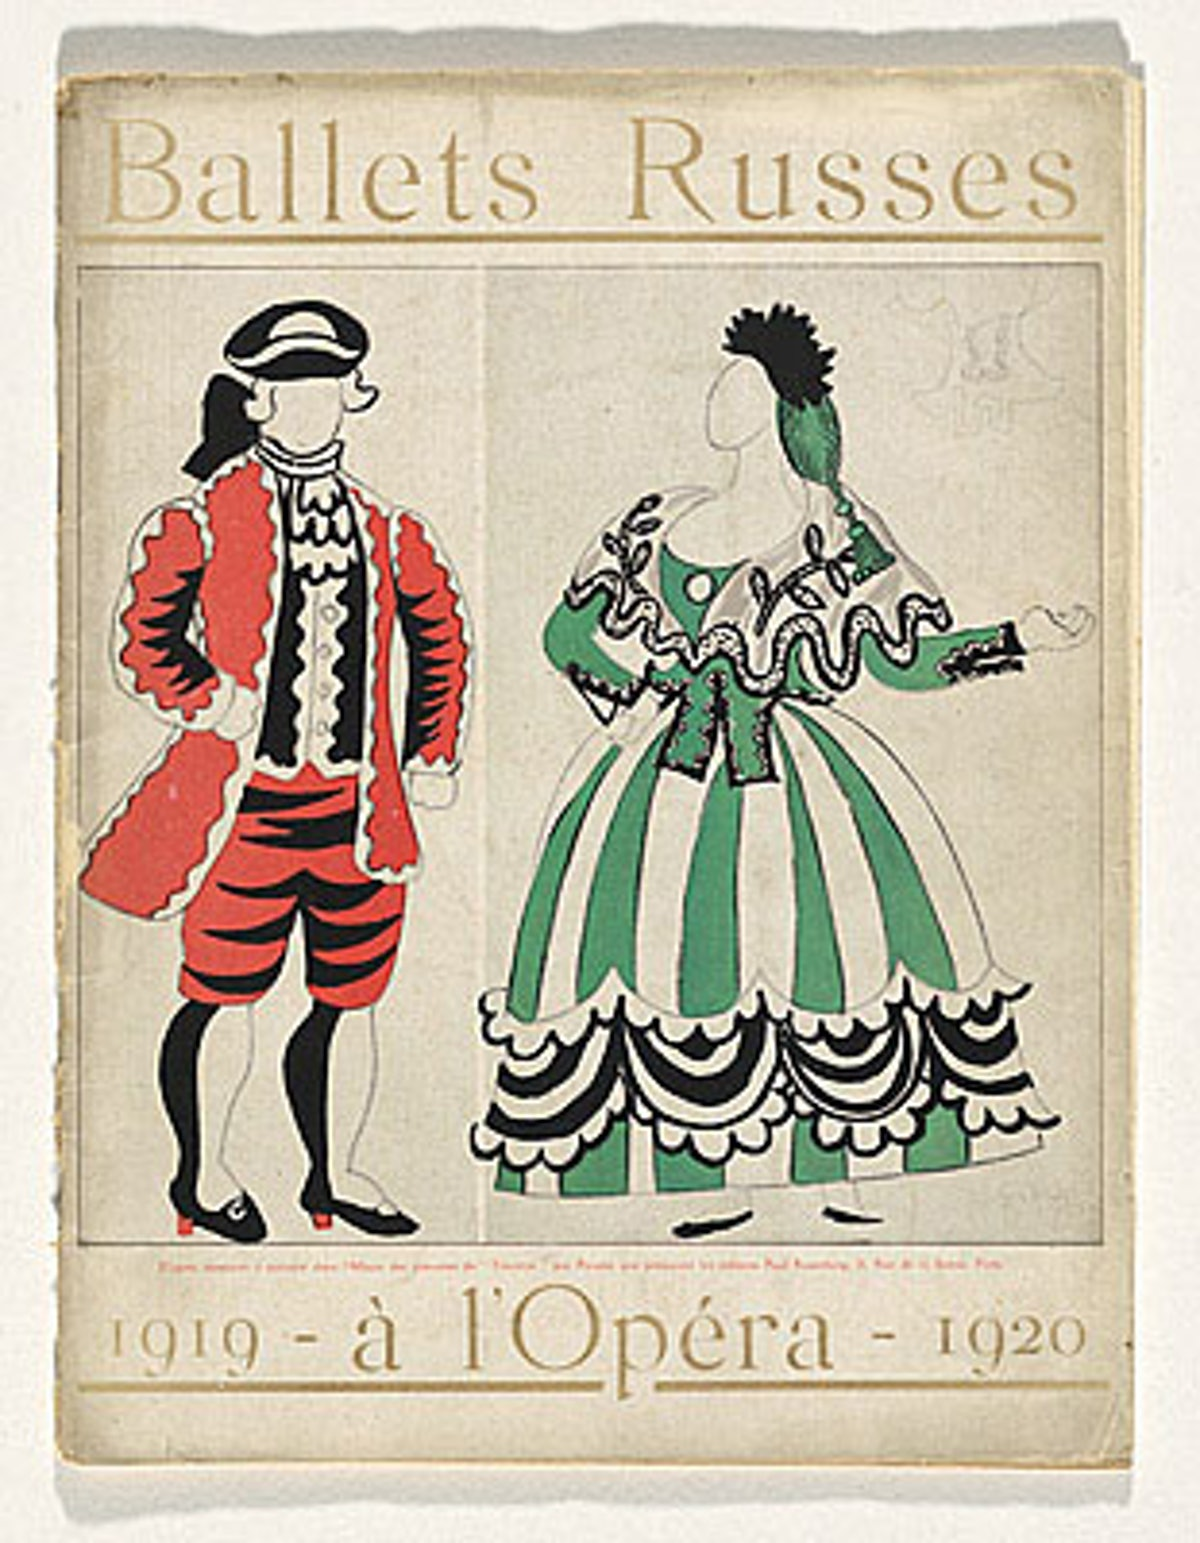 Serge Diaghilev Ballets Russes production of Le Tricorne [above], with costumes and sets designed by...